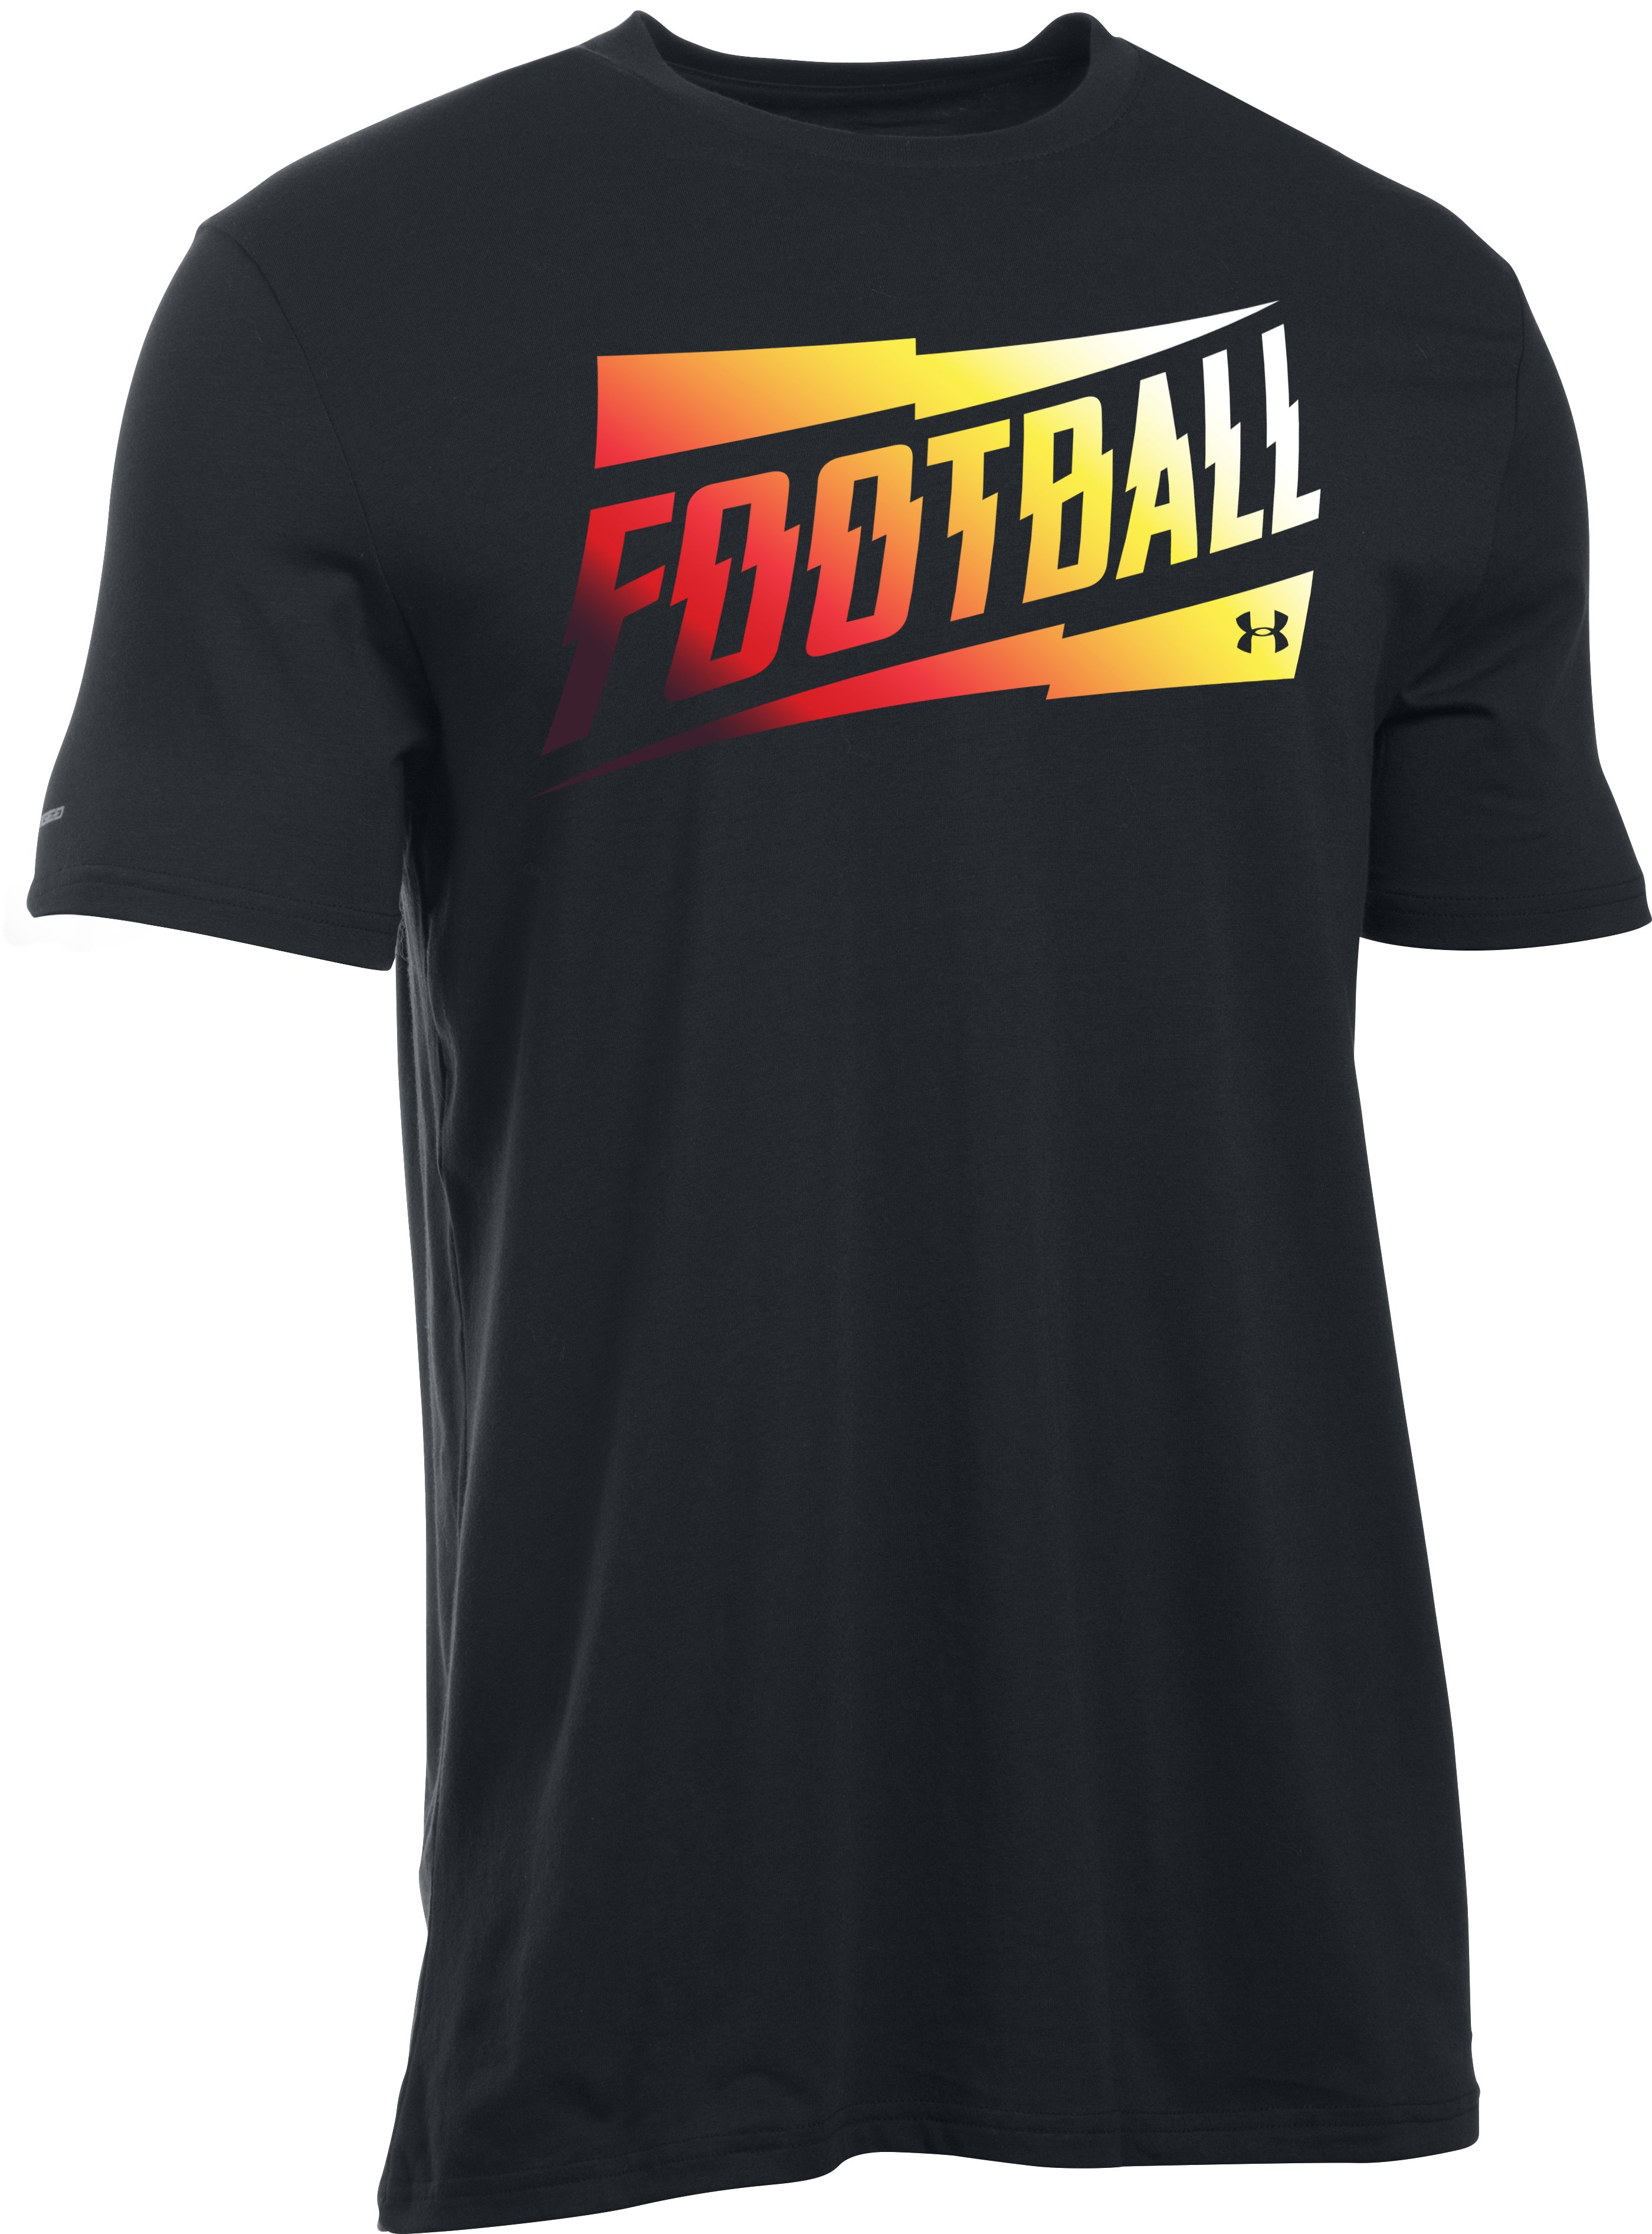 Men's Florida UA Football T-Shirt, Black